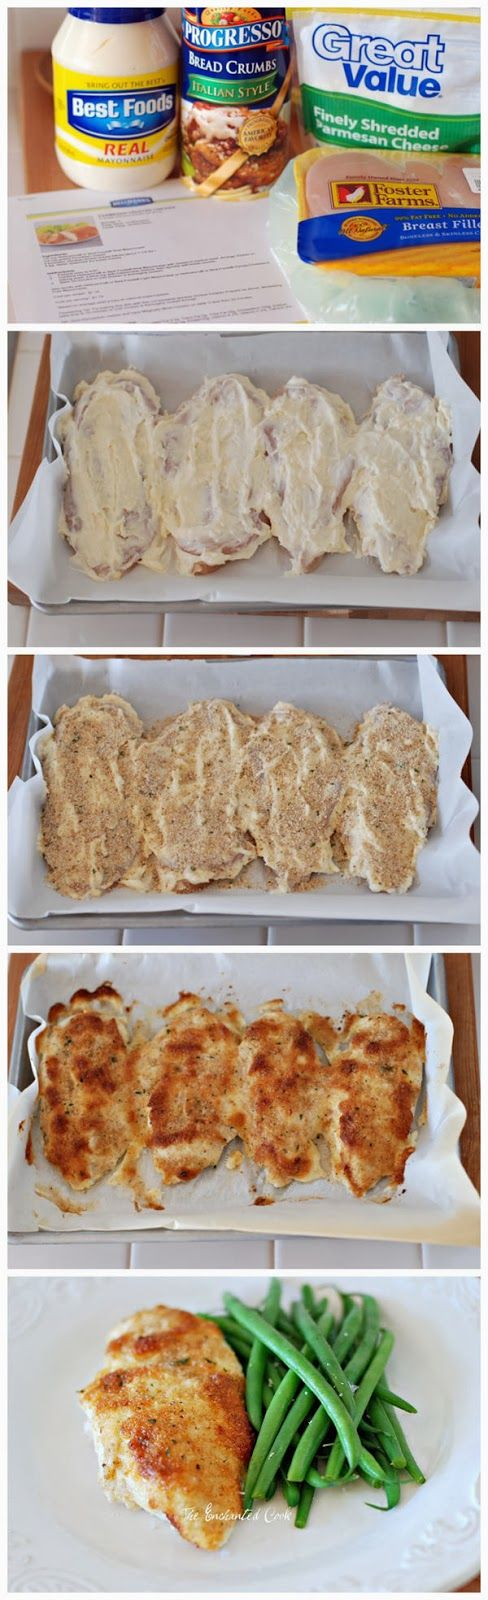 Parmesan Crusted Chicken---- my modified recipe---- 1/2 cup mayo/plain yogurt, 1/4 cup shredded mozzarella cheese, 4-5 chicken breasts, 4 teaspoons Italian seasoned dry bread crumbs---- coat both sides of chicken with bread crumbs, option- add lemon juice and garlic powder for flavor